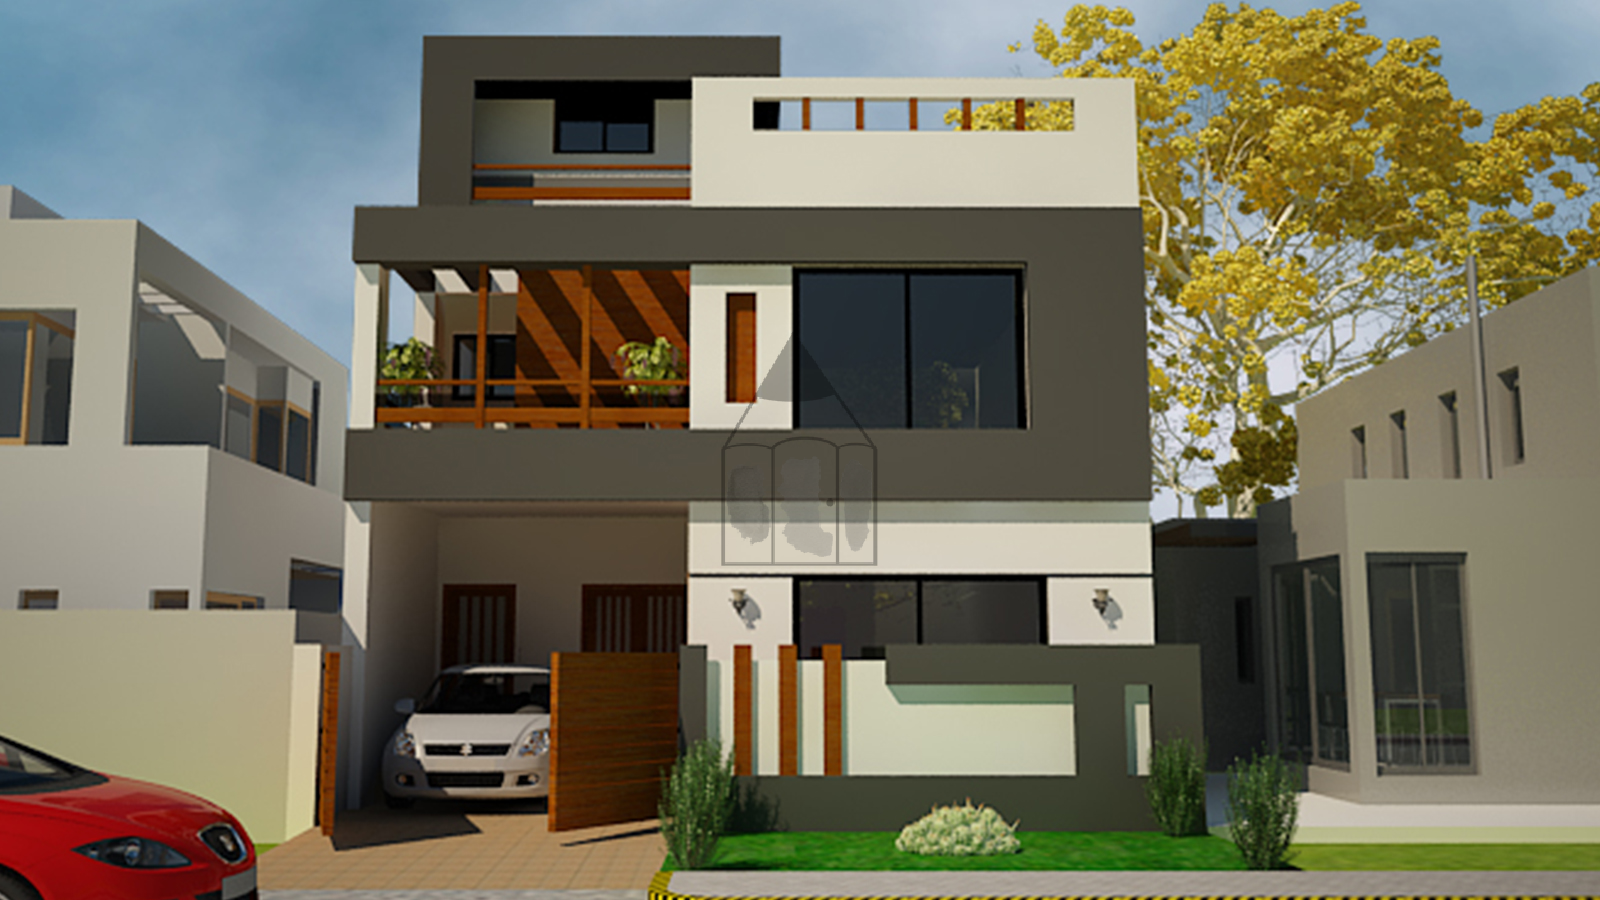 5 marla house front design | This is a standard 5 Marla ...